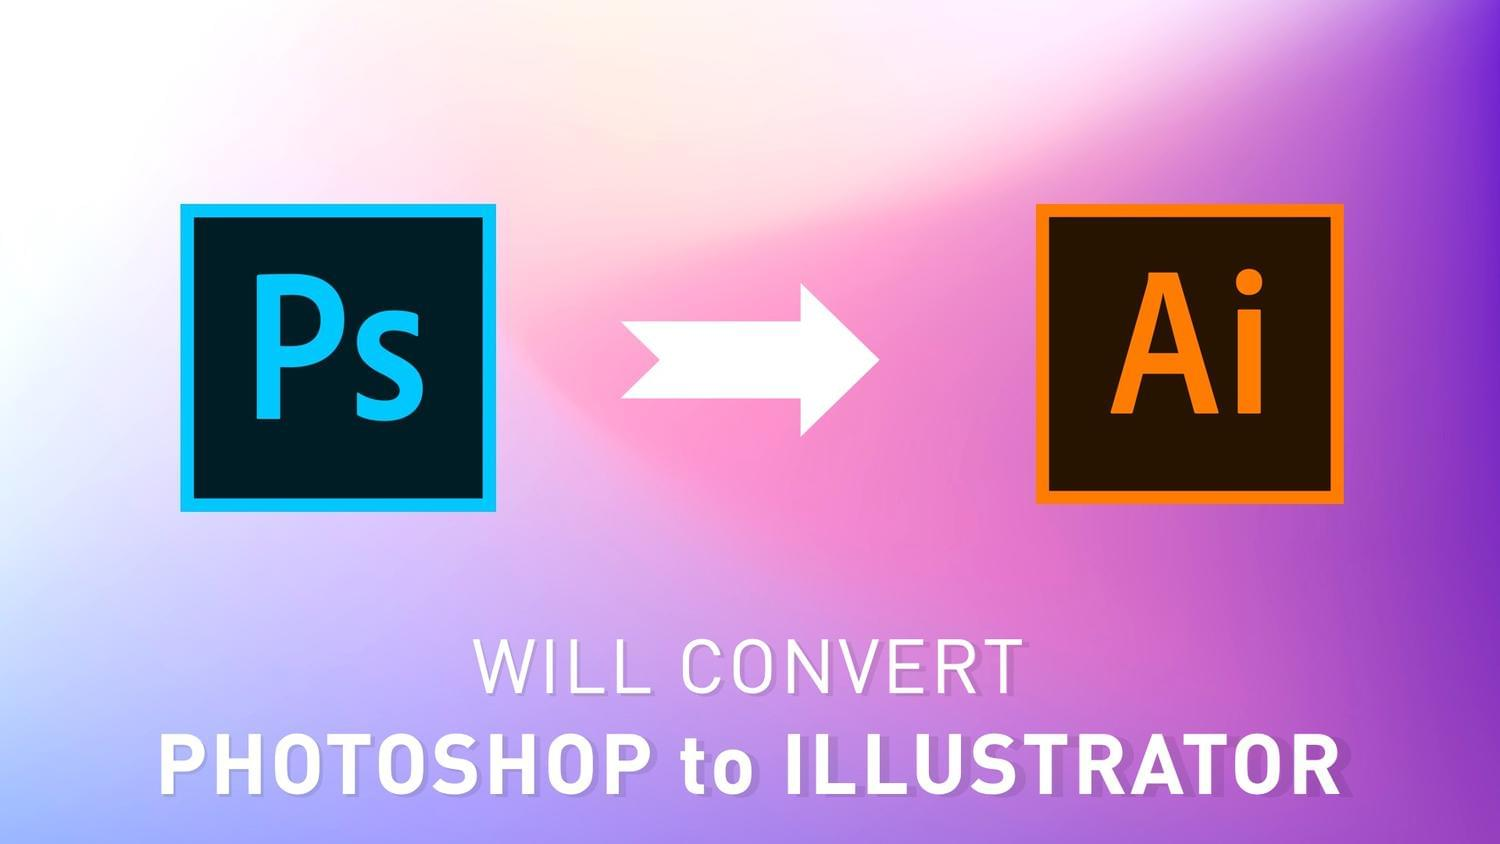 Convert Photoshop to Illustrator by arvaone - 115070